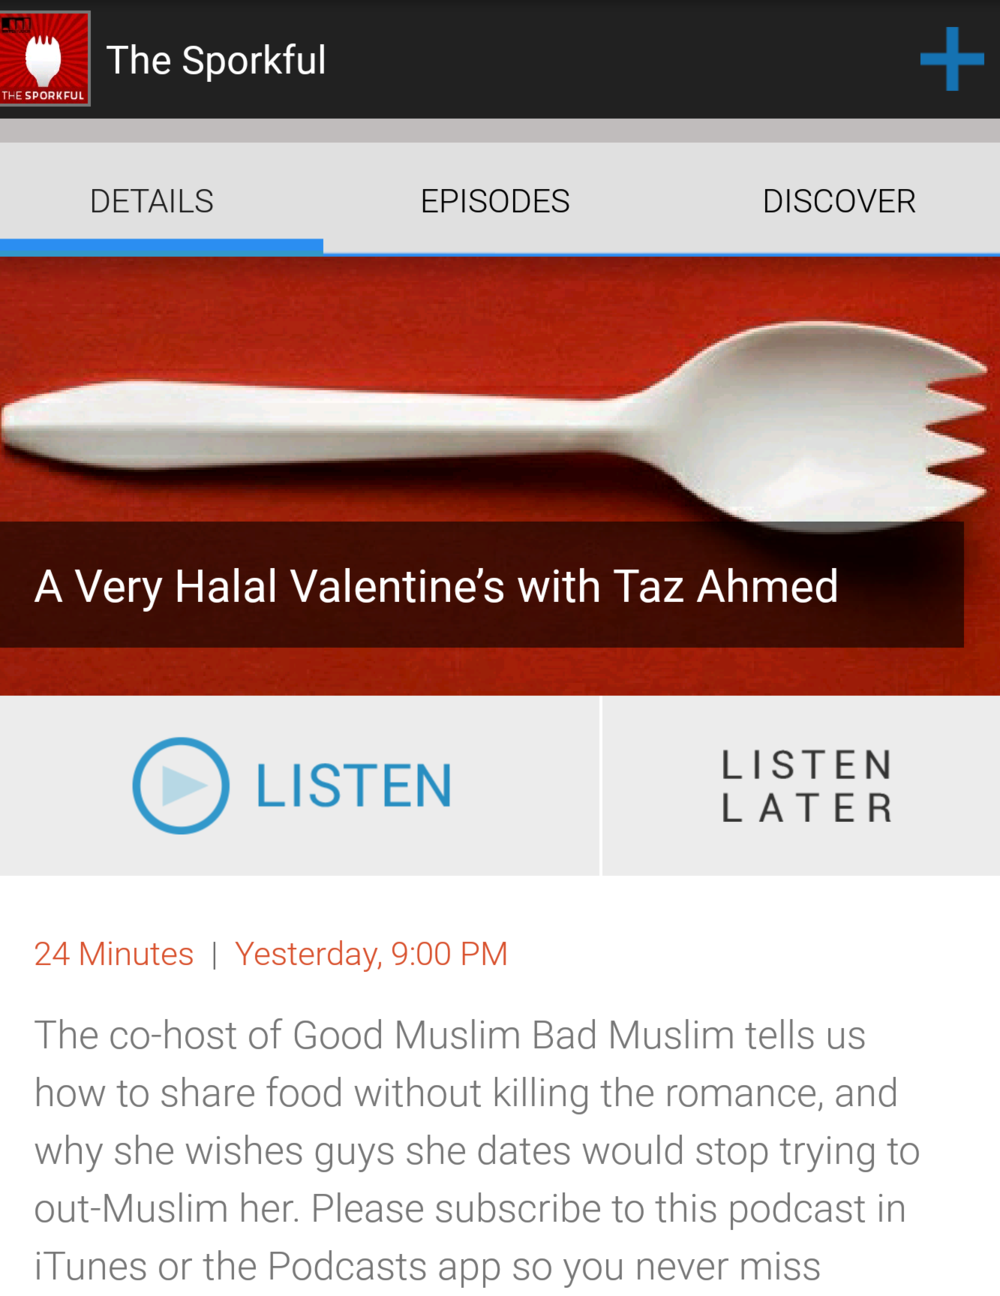 A Very Halal Valentine's with Taz Ahmed| The Sporkful Podcast   (Feb. 2017)